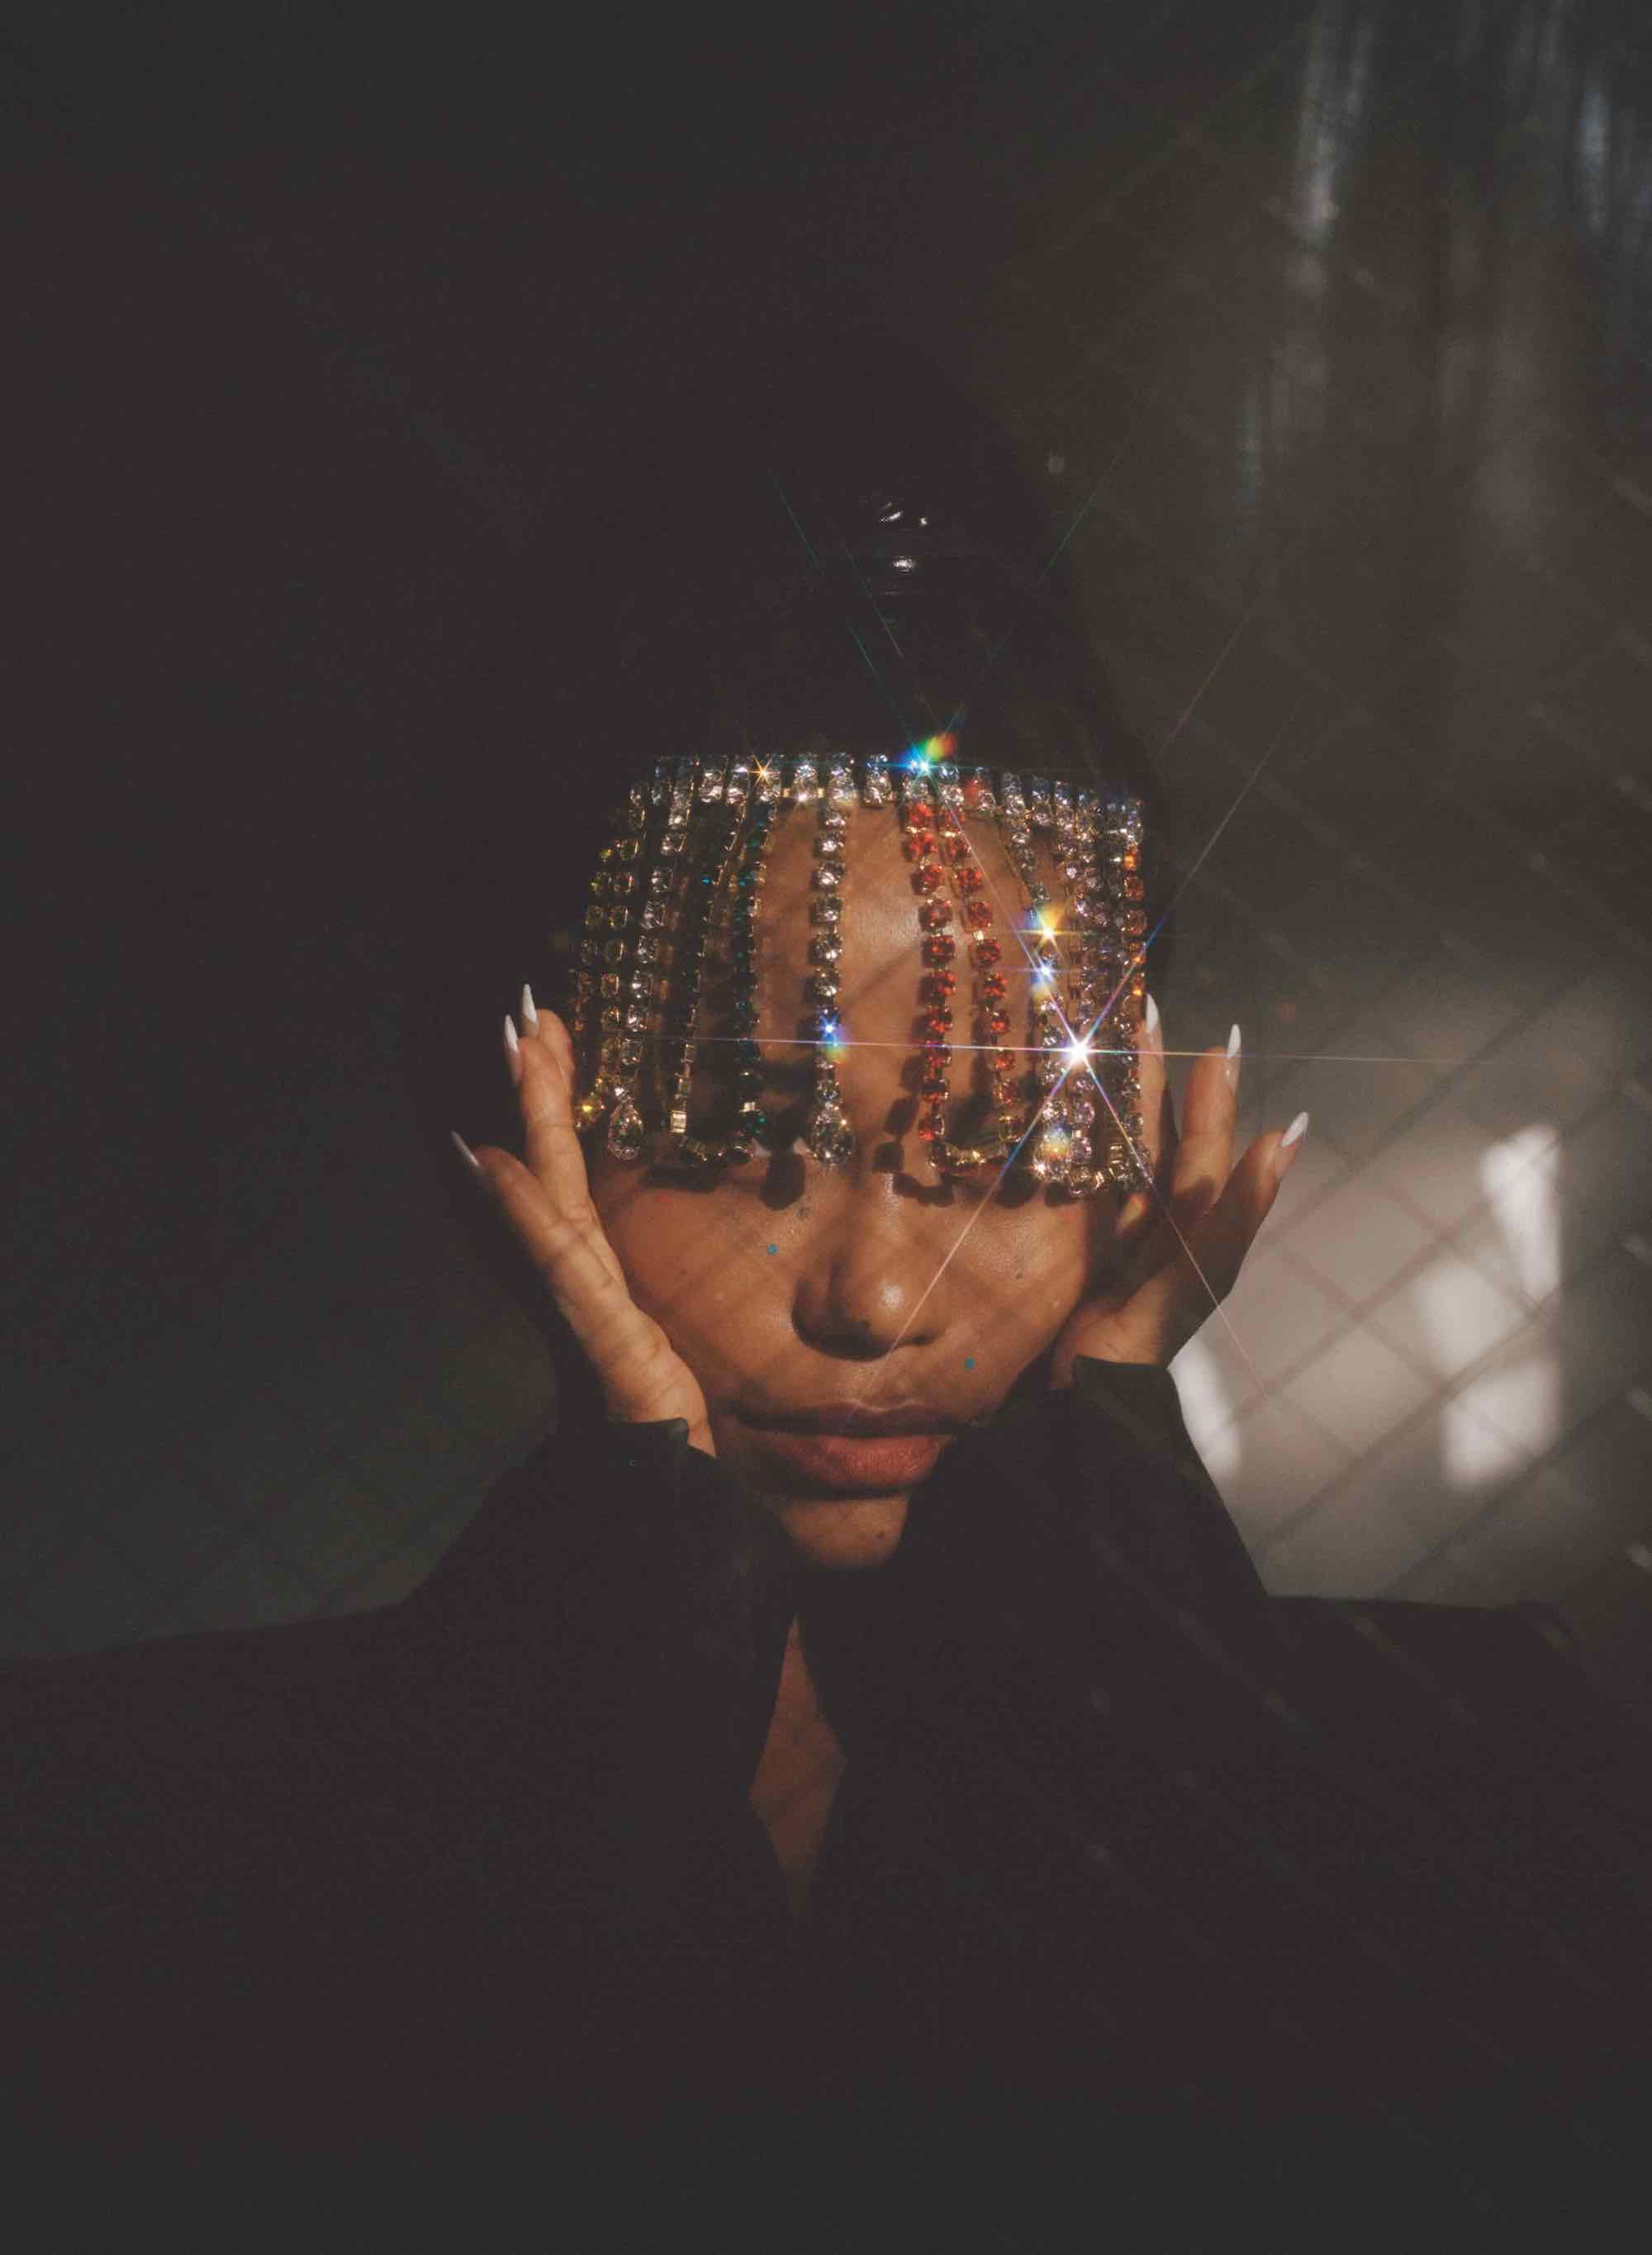 Zola actress Taylour Paige in the Winter issue of Wonderland headdress